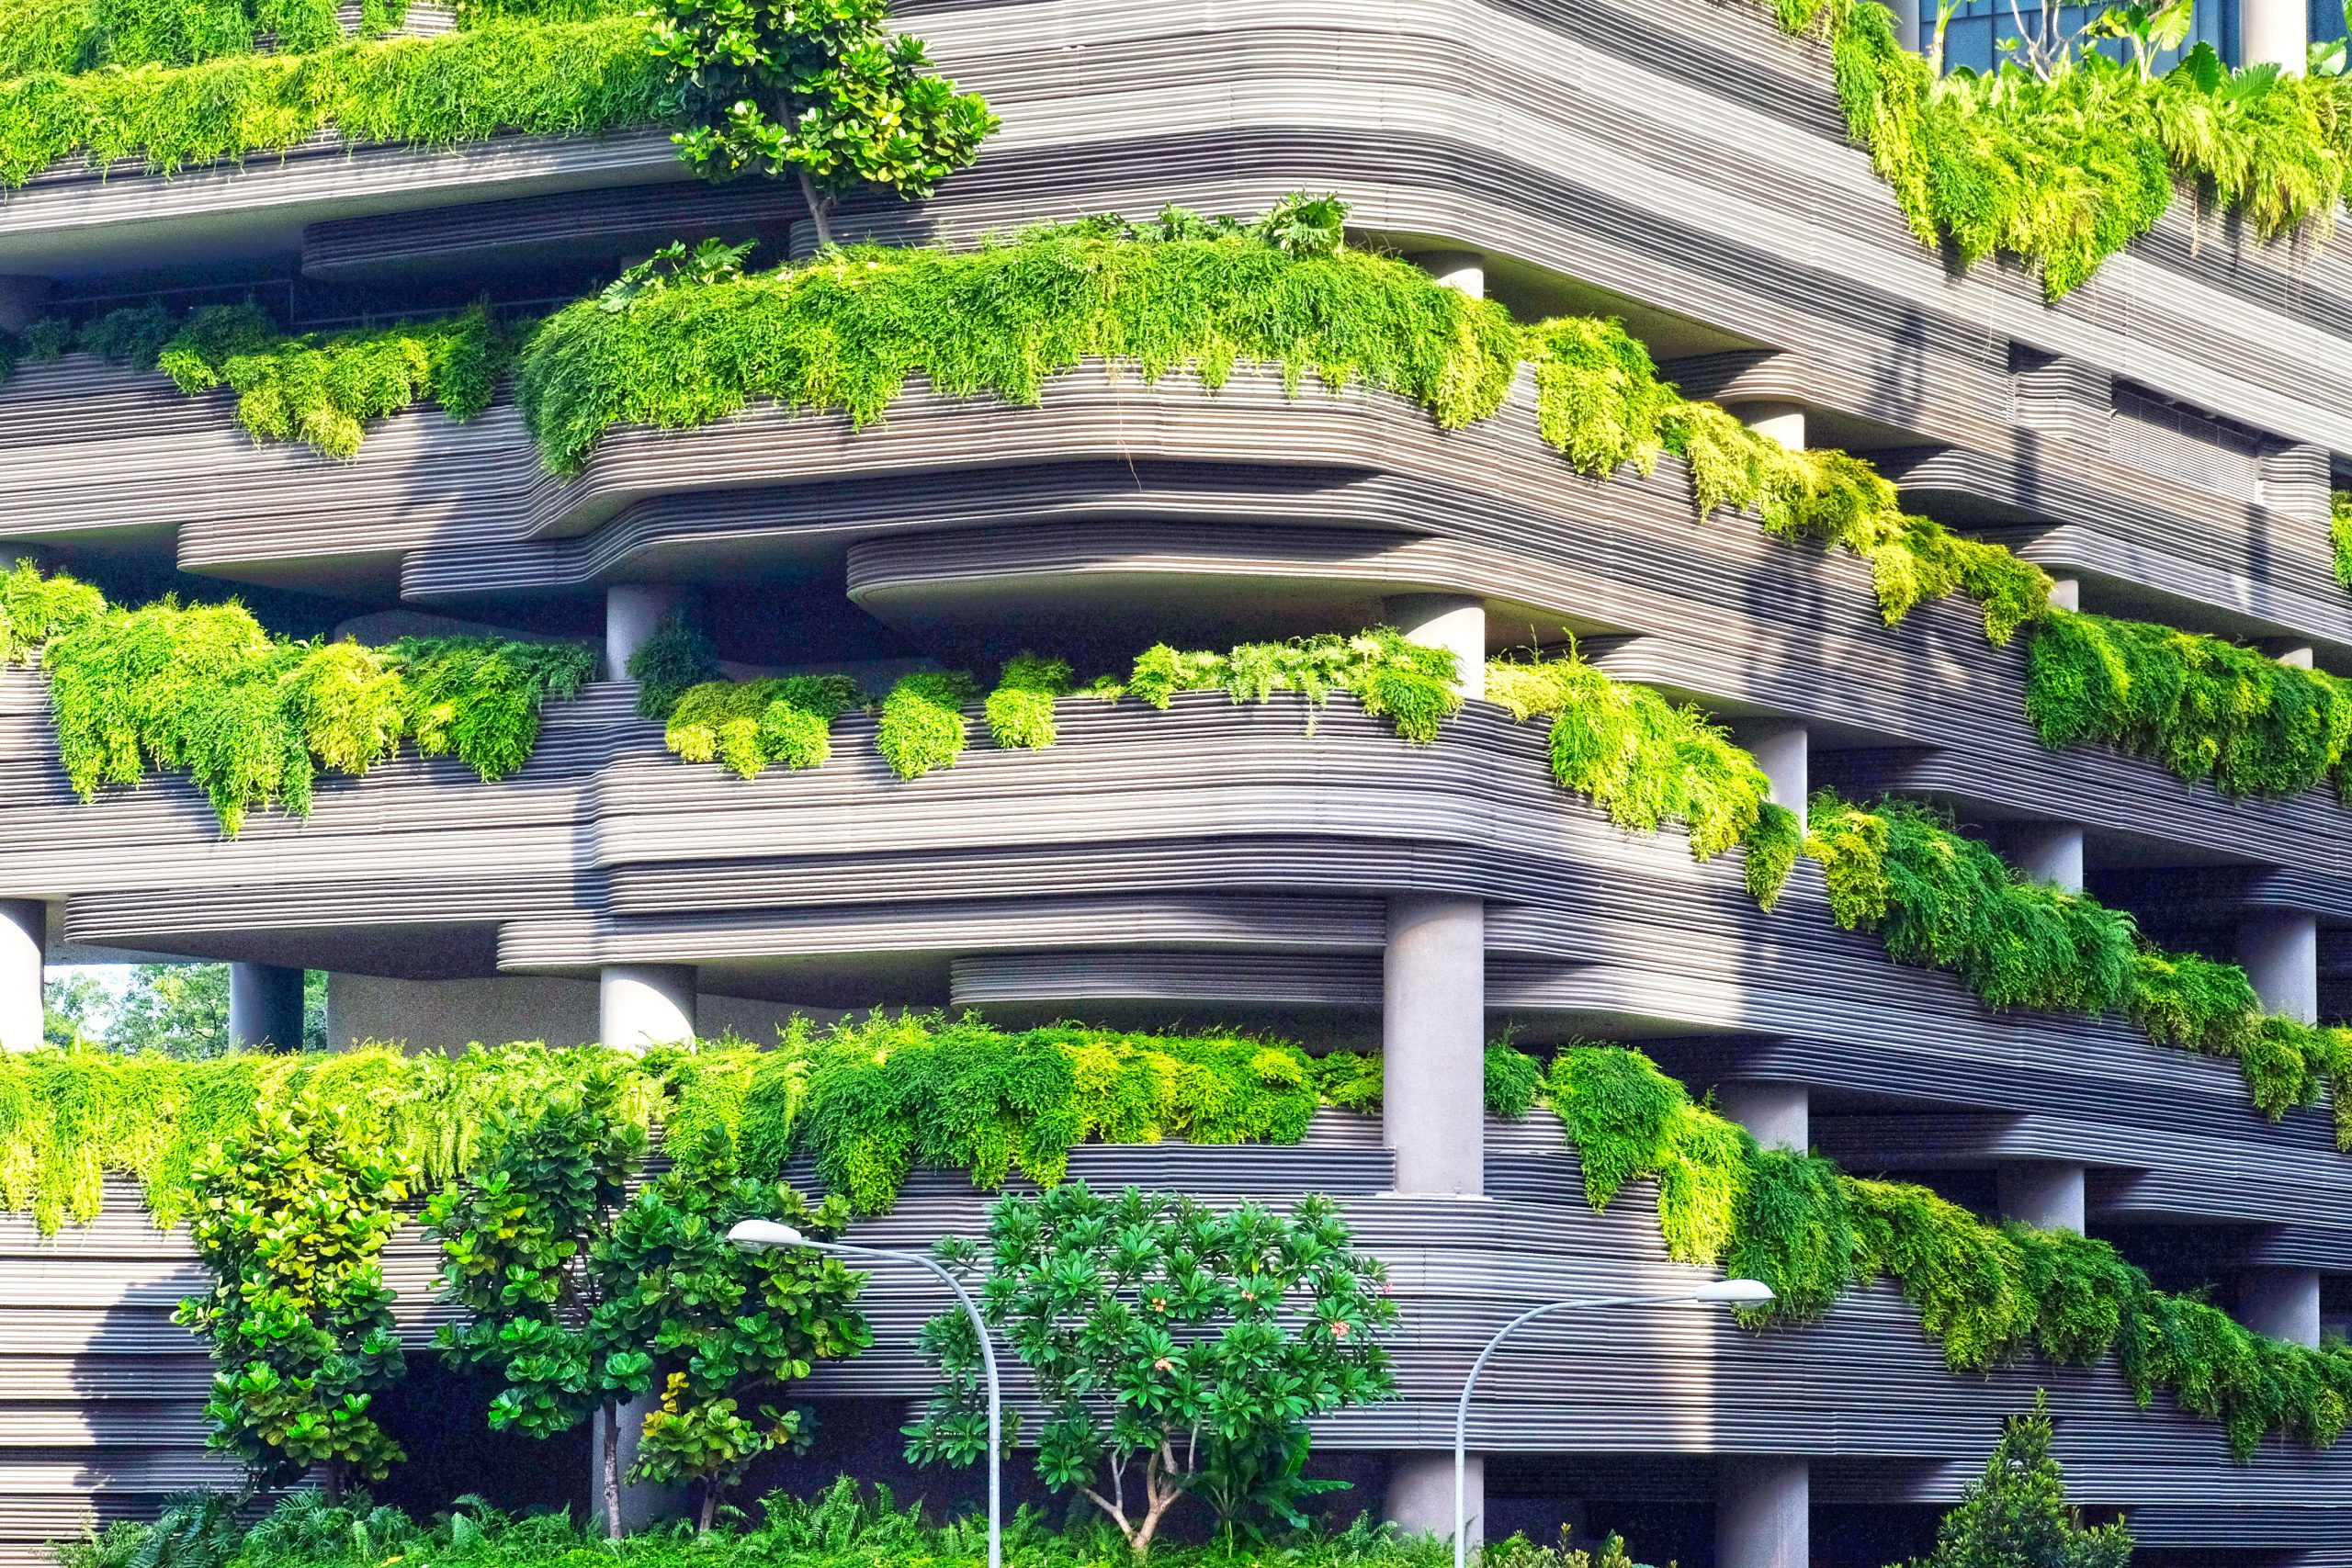 Sustainable Healthy City